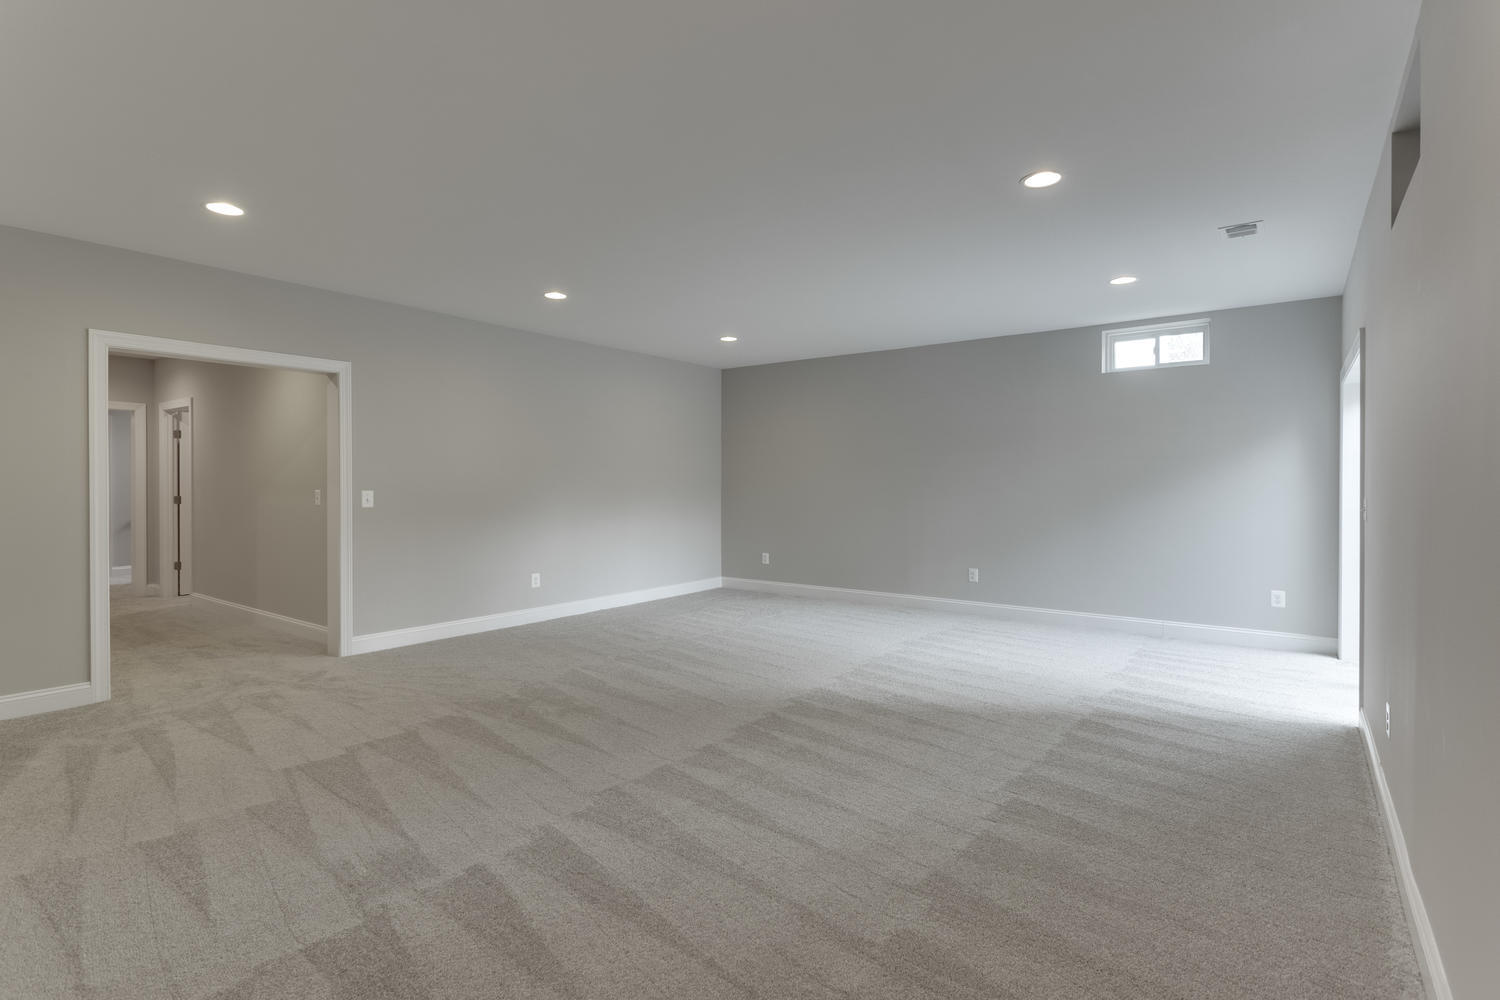 6632 Hallwood Ave Falls Church-large-081-68-Basement-1500x1000-72dpi